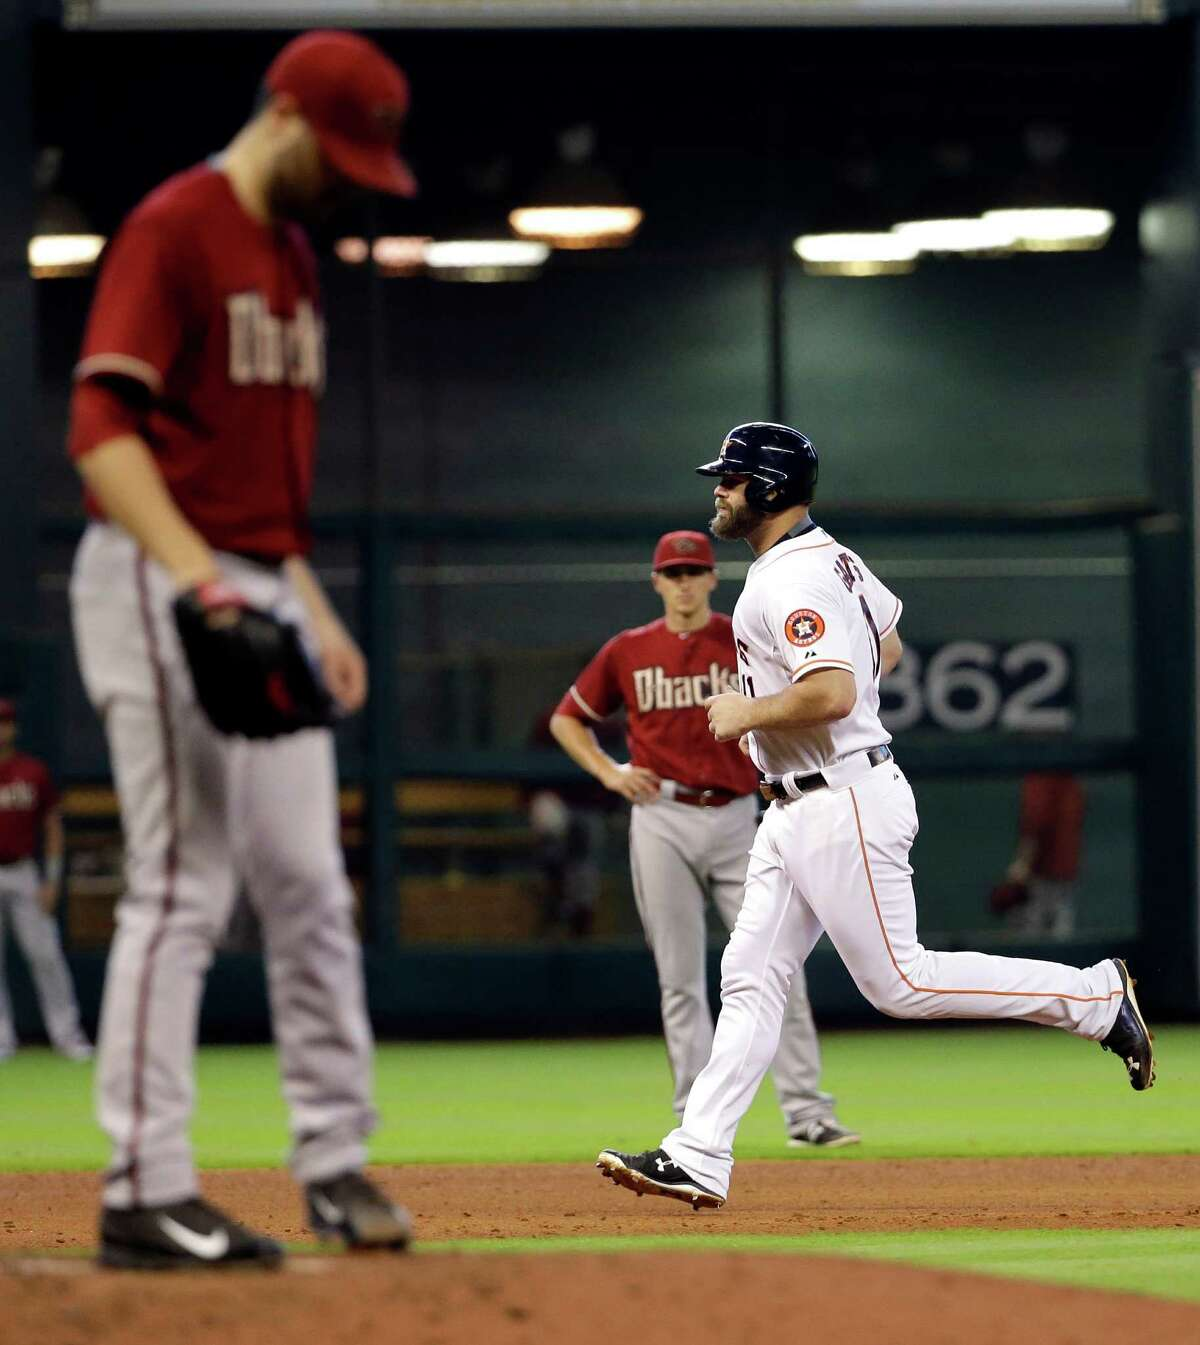 Houston Astros' Evan Gattis, right, runs the bases after hitting a home run off Arizona Diamondbacks starting pitcher Robbie Ray, left, during the fifth inning of a baseball game Sunday, Aug. 2, 2015, in Houston. (AP Photo/David J. Phillip)